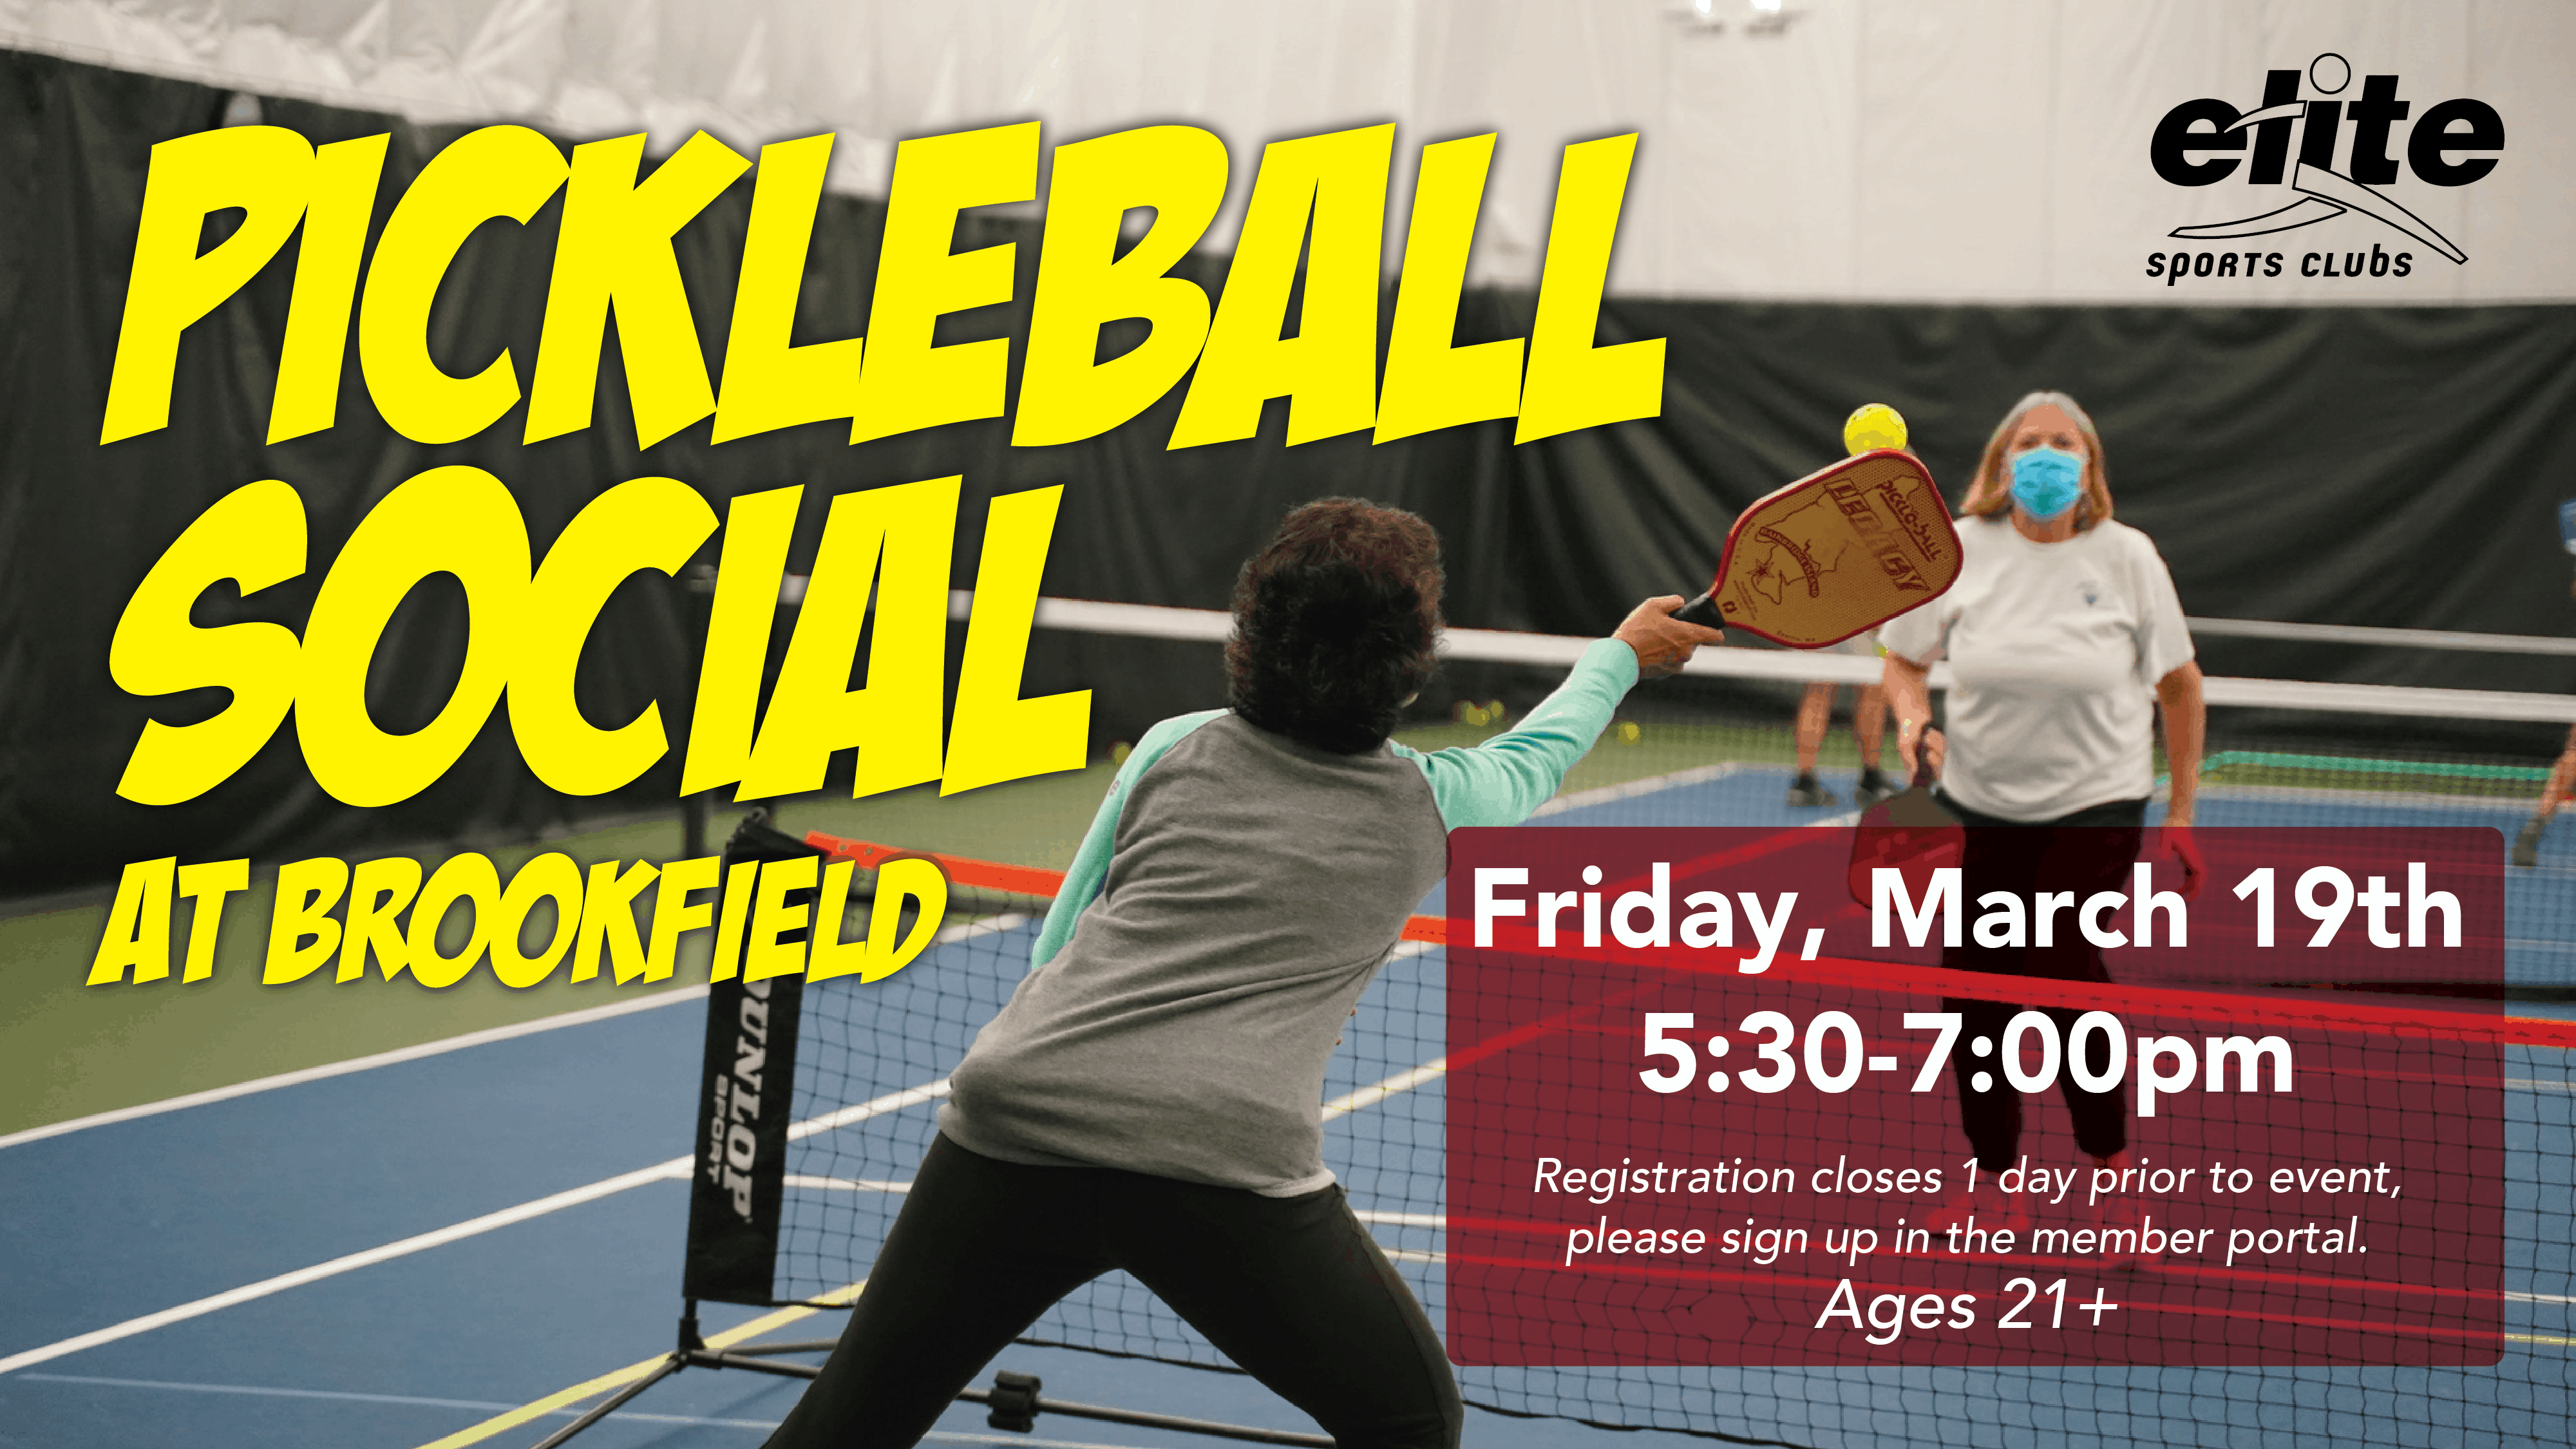 Pickleball Social - Elite Brookfield - March 2021